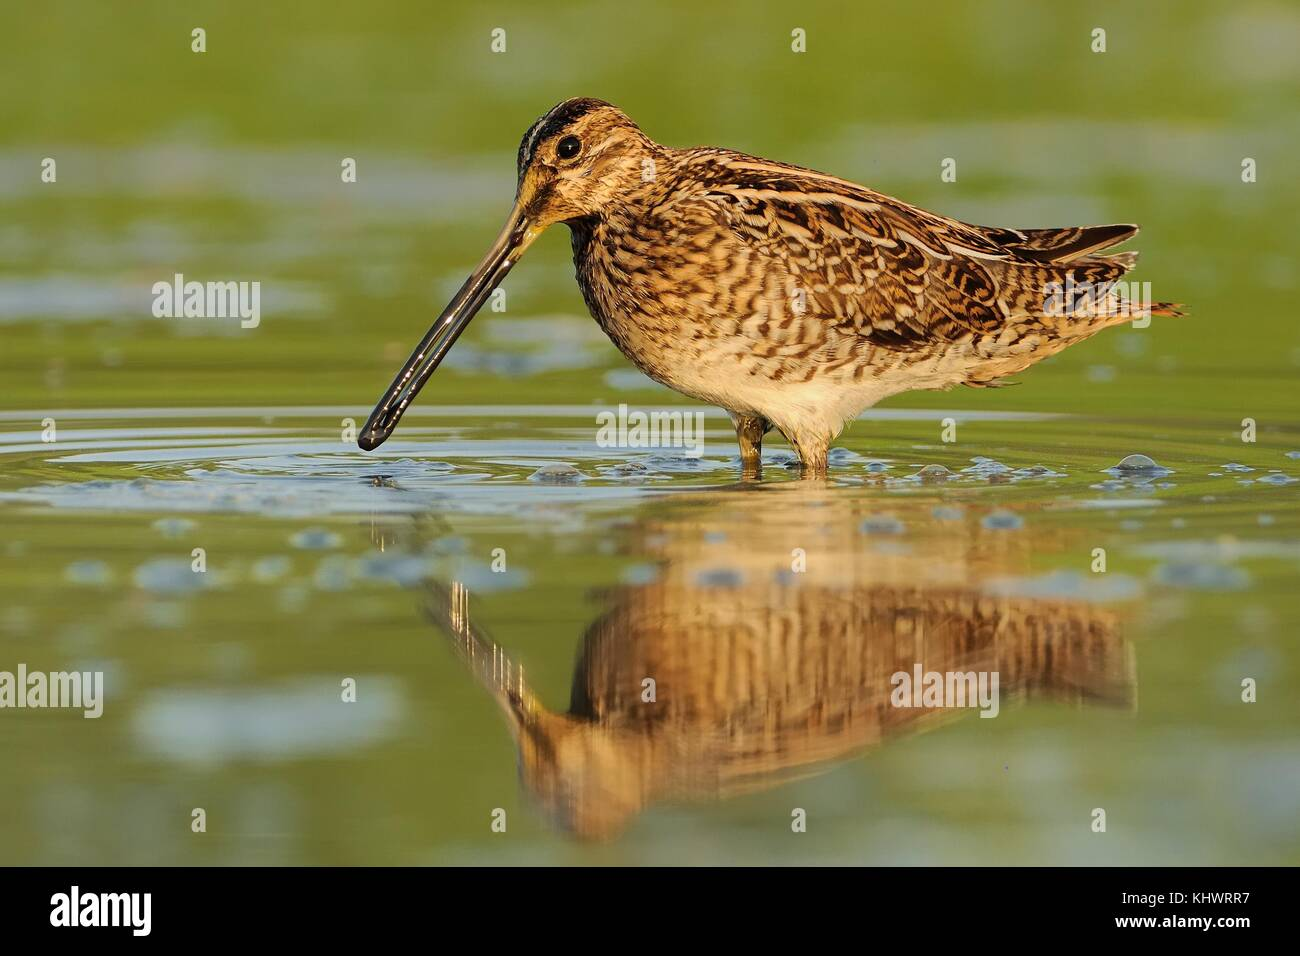 Common Snipe - Gallinago gallinago wader feeding in the green water, lake in the south or Moravia - Stock Image